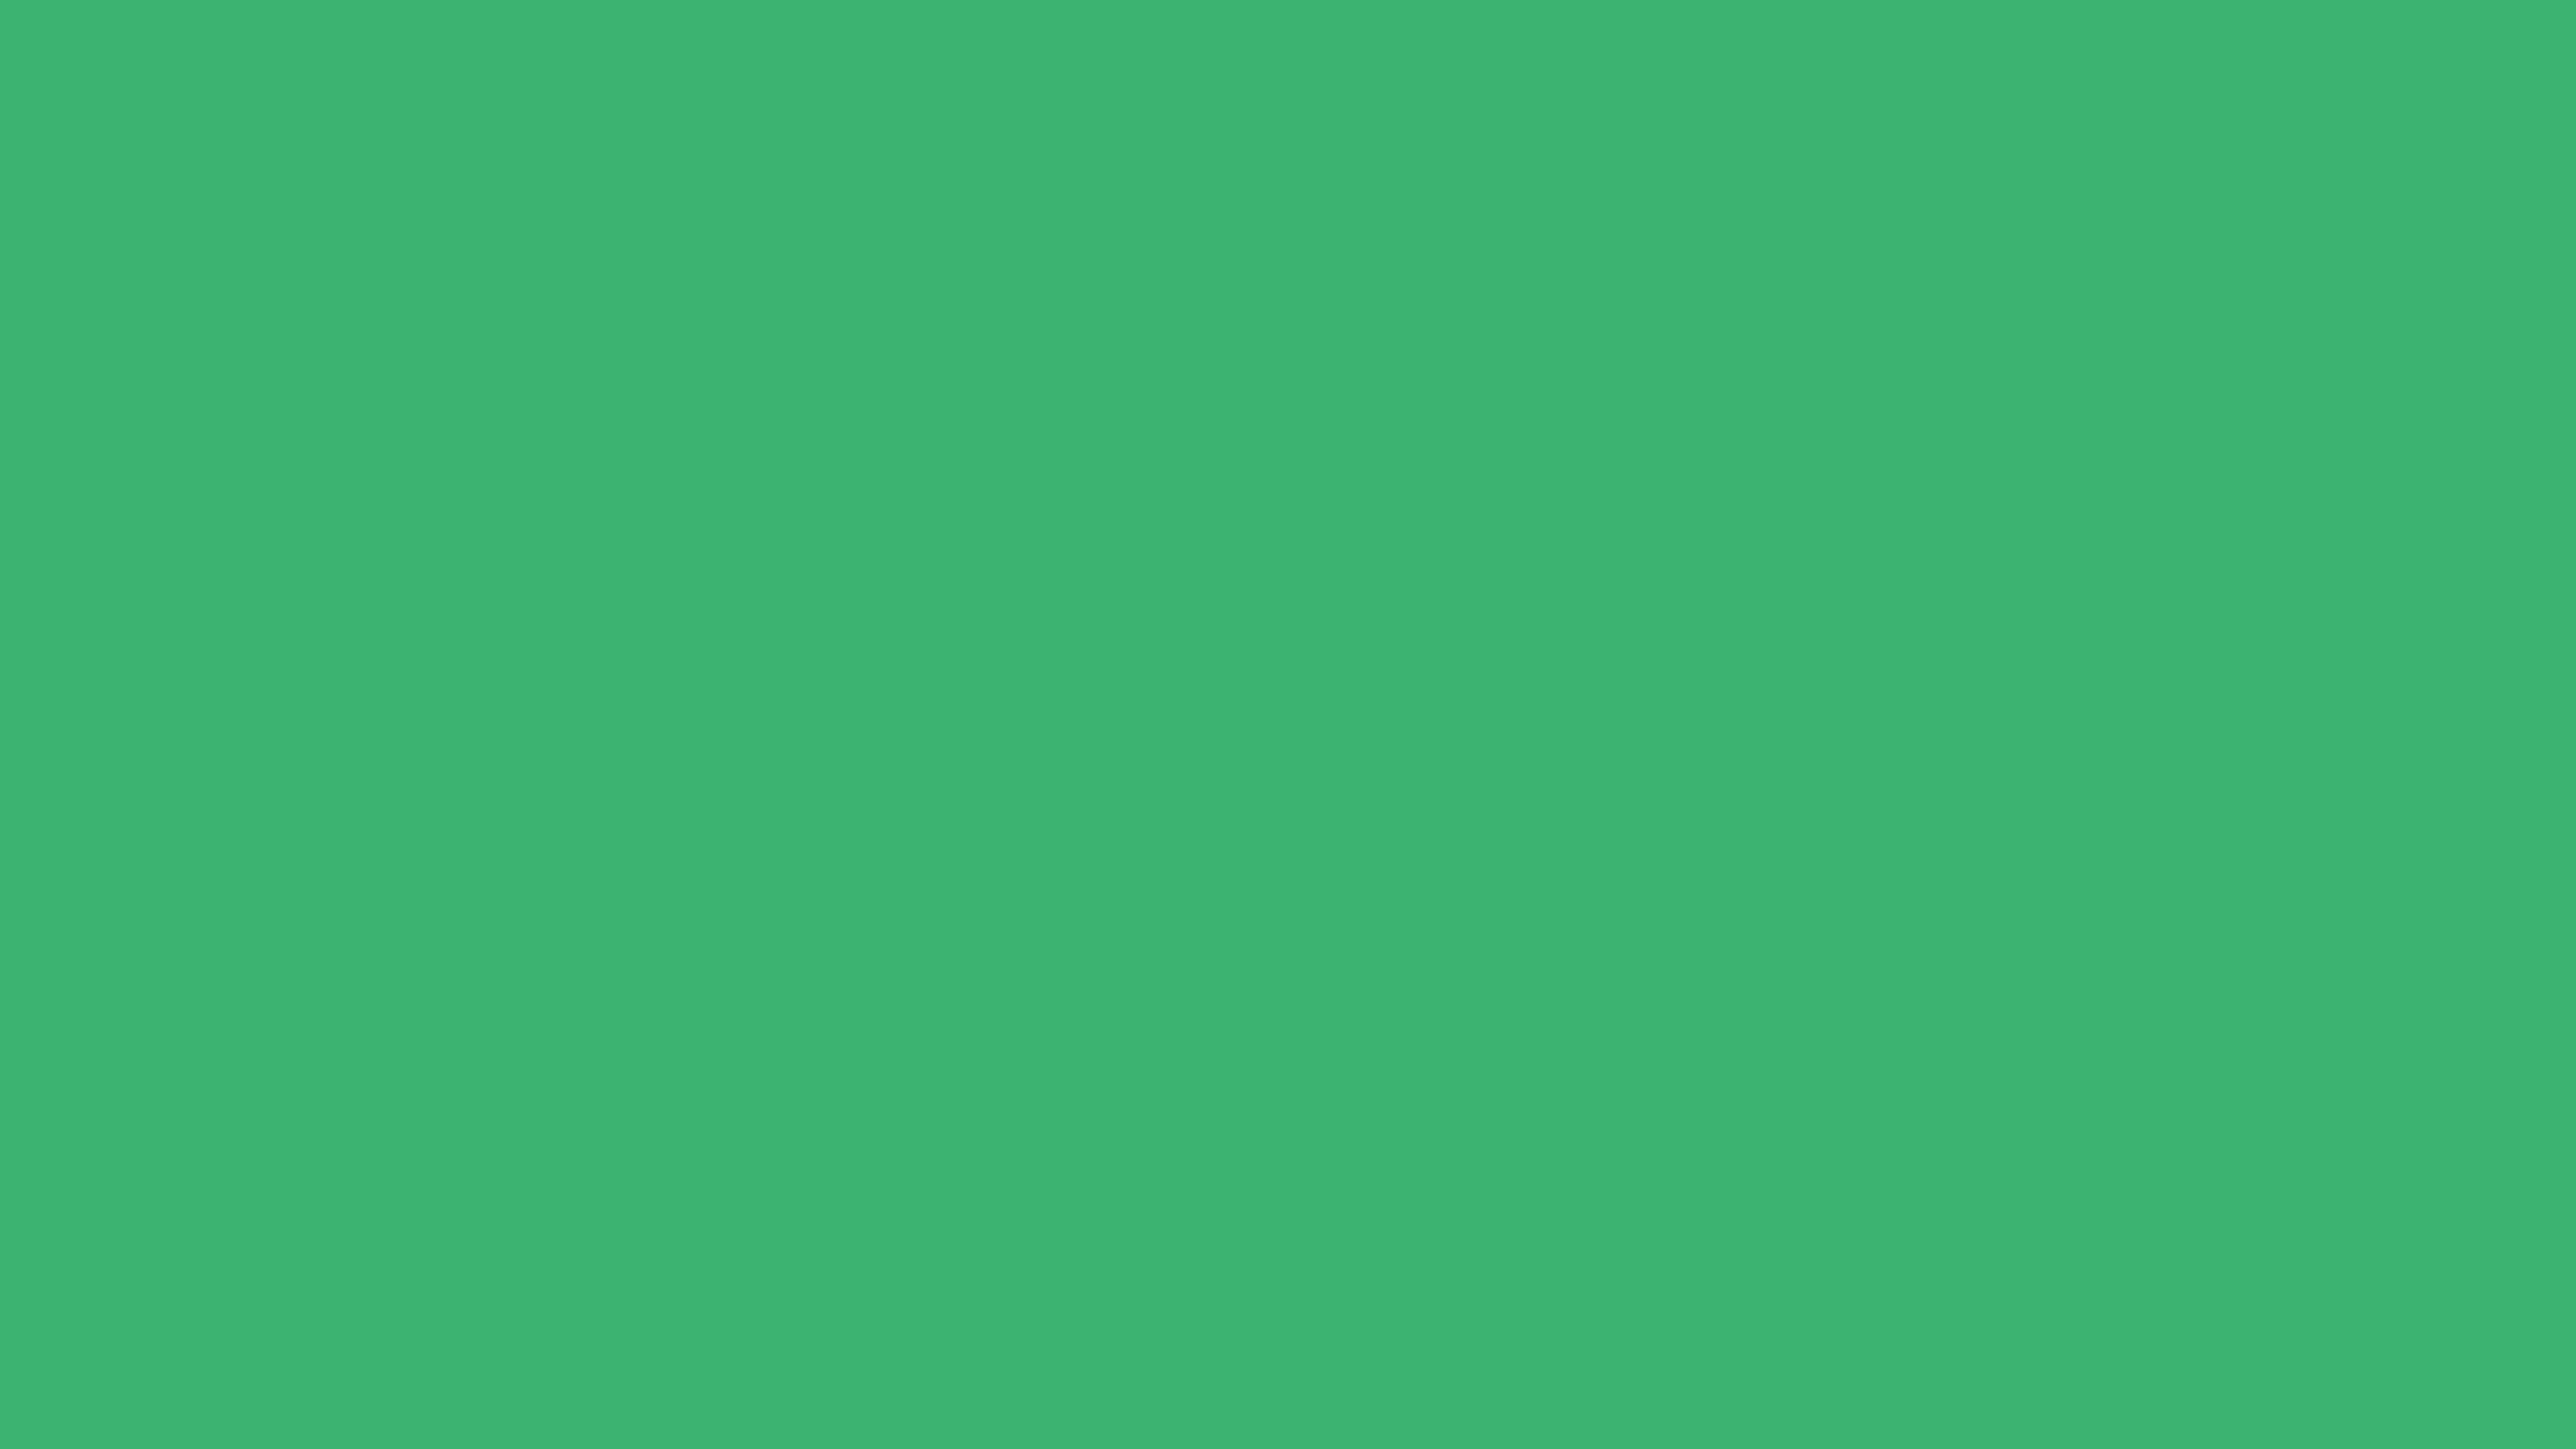 5120x2880 Medium Sea Green Solid Color Background